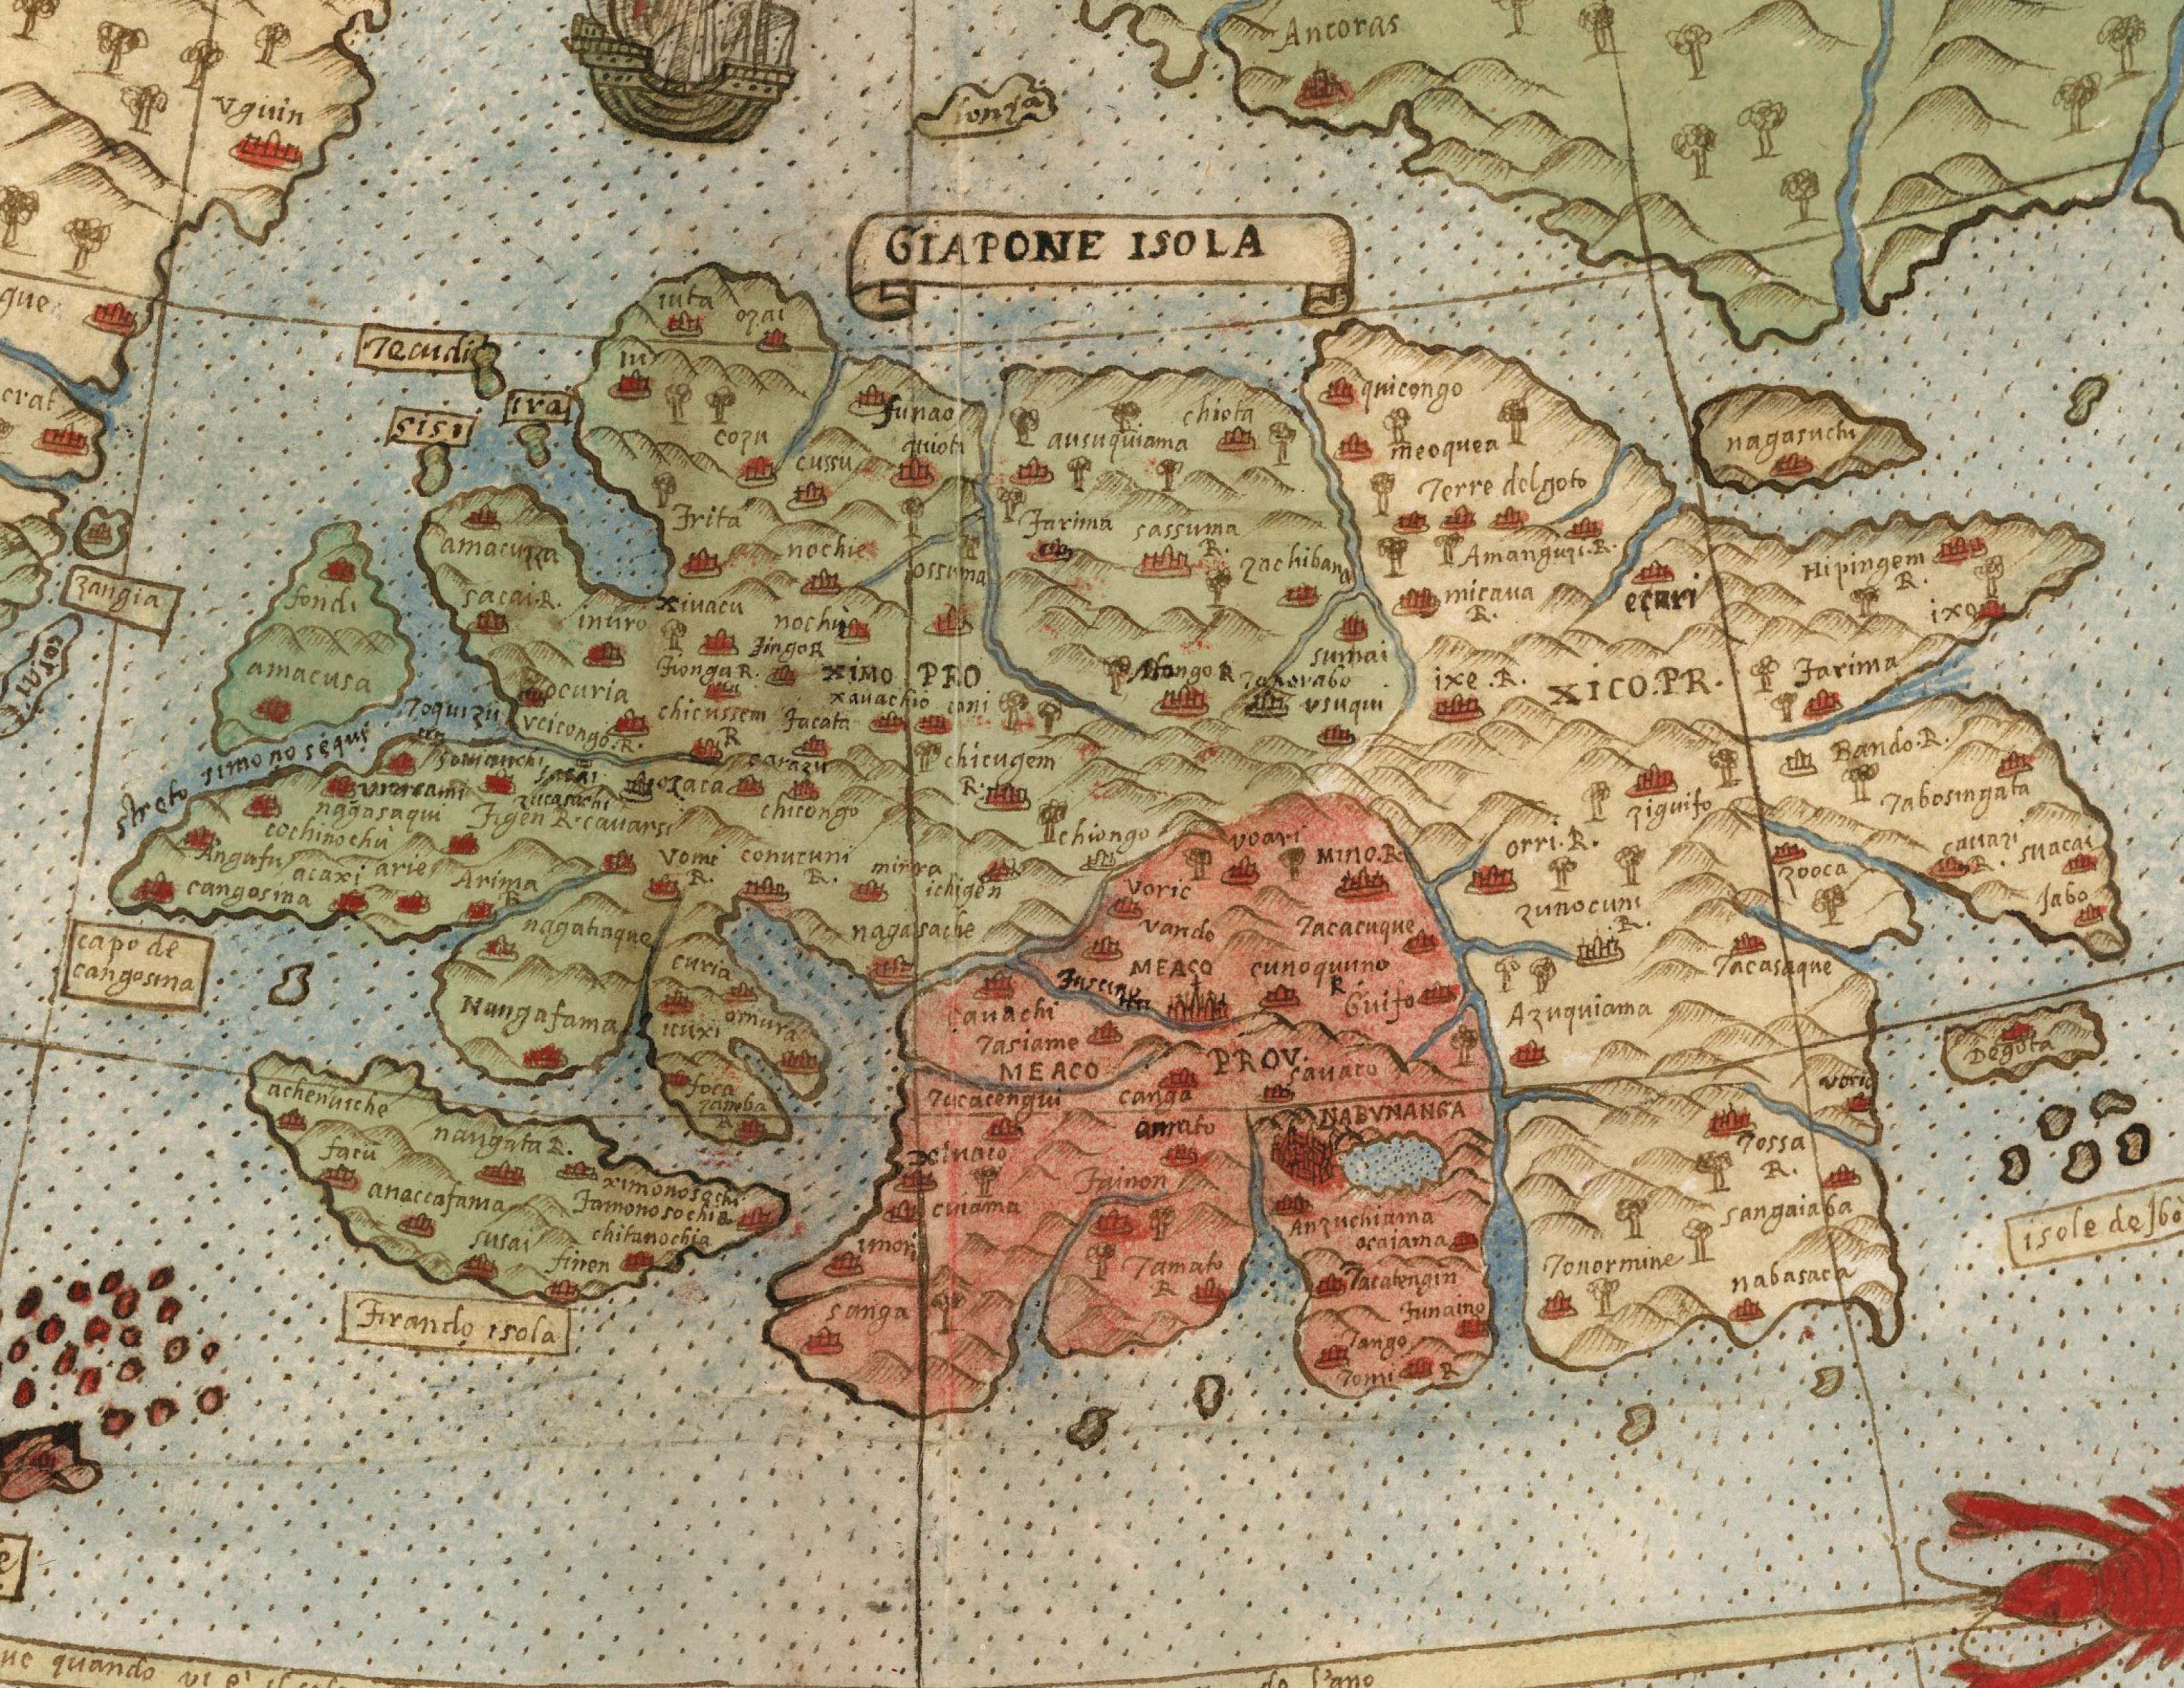 David Rumsey Historical Map Collection | Largest Early World Map